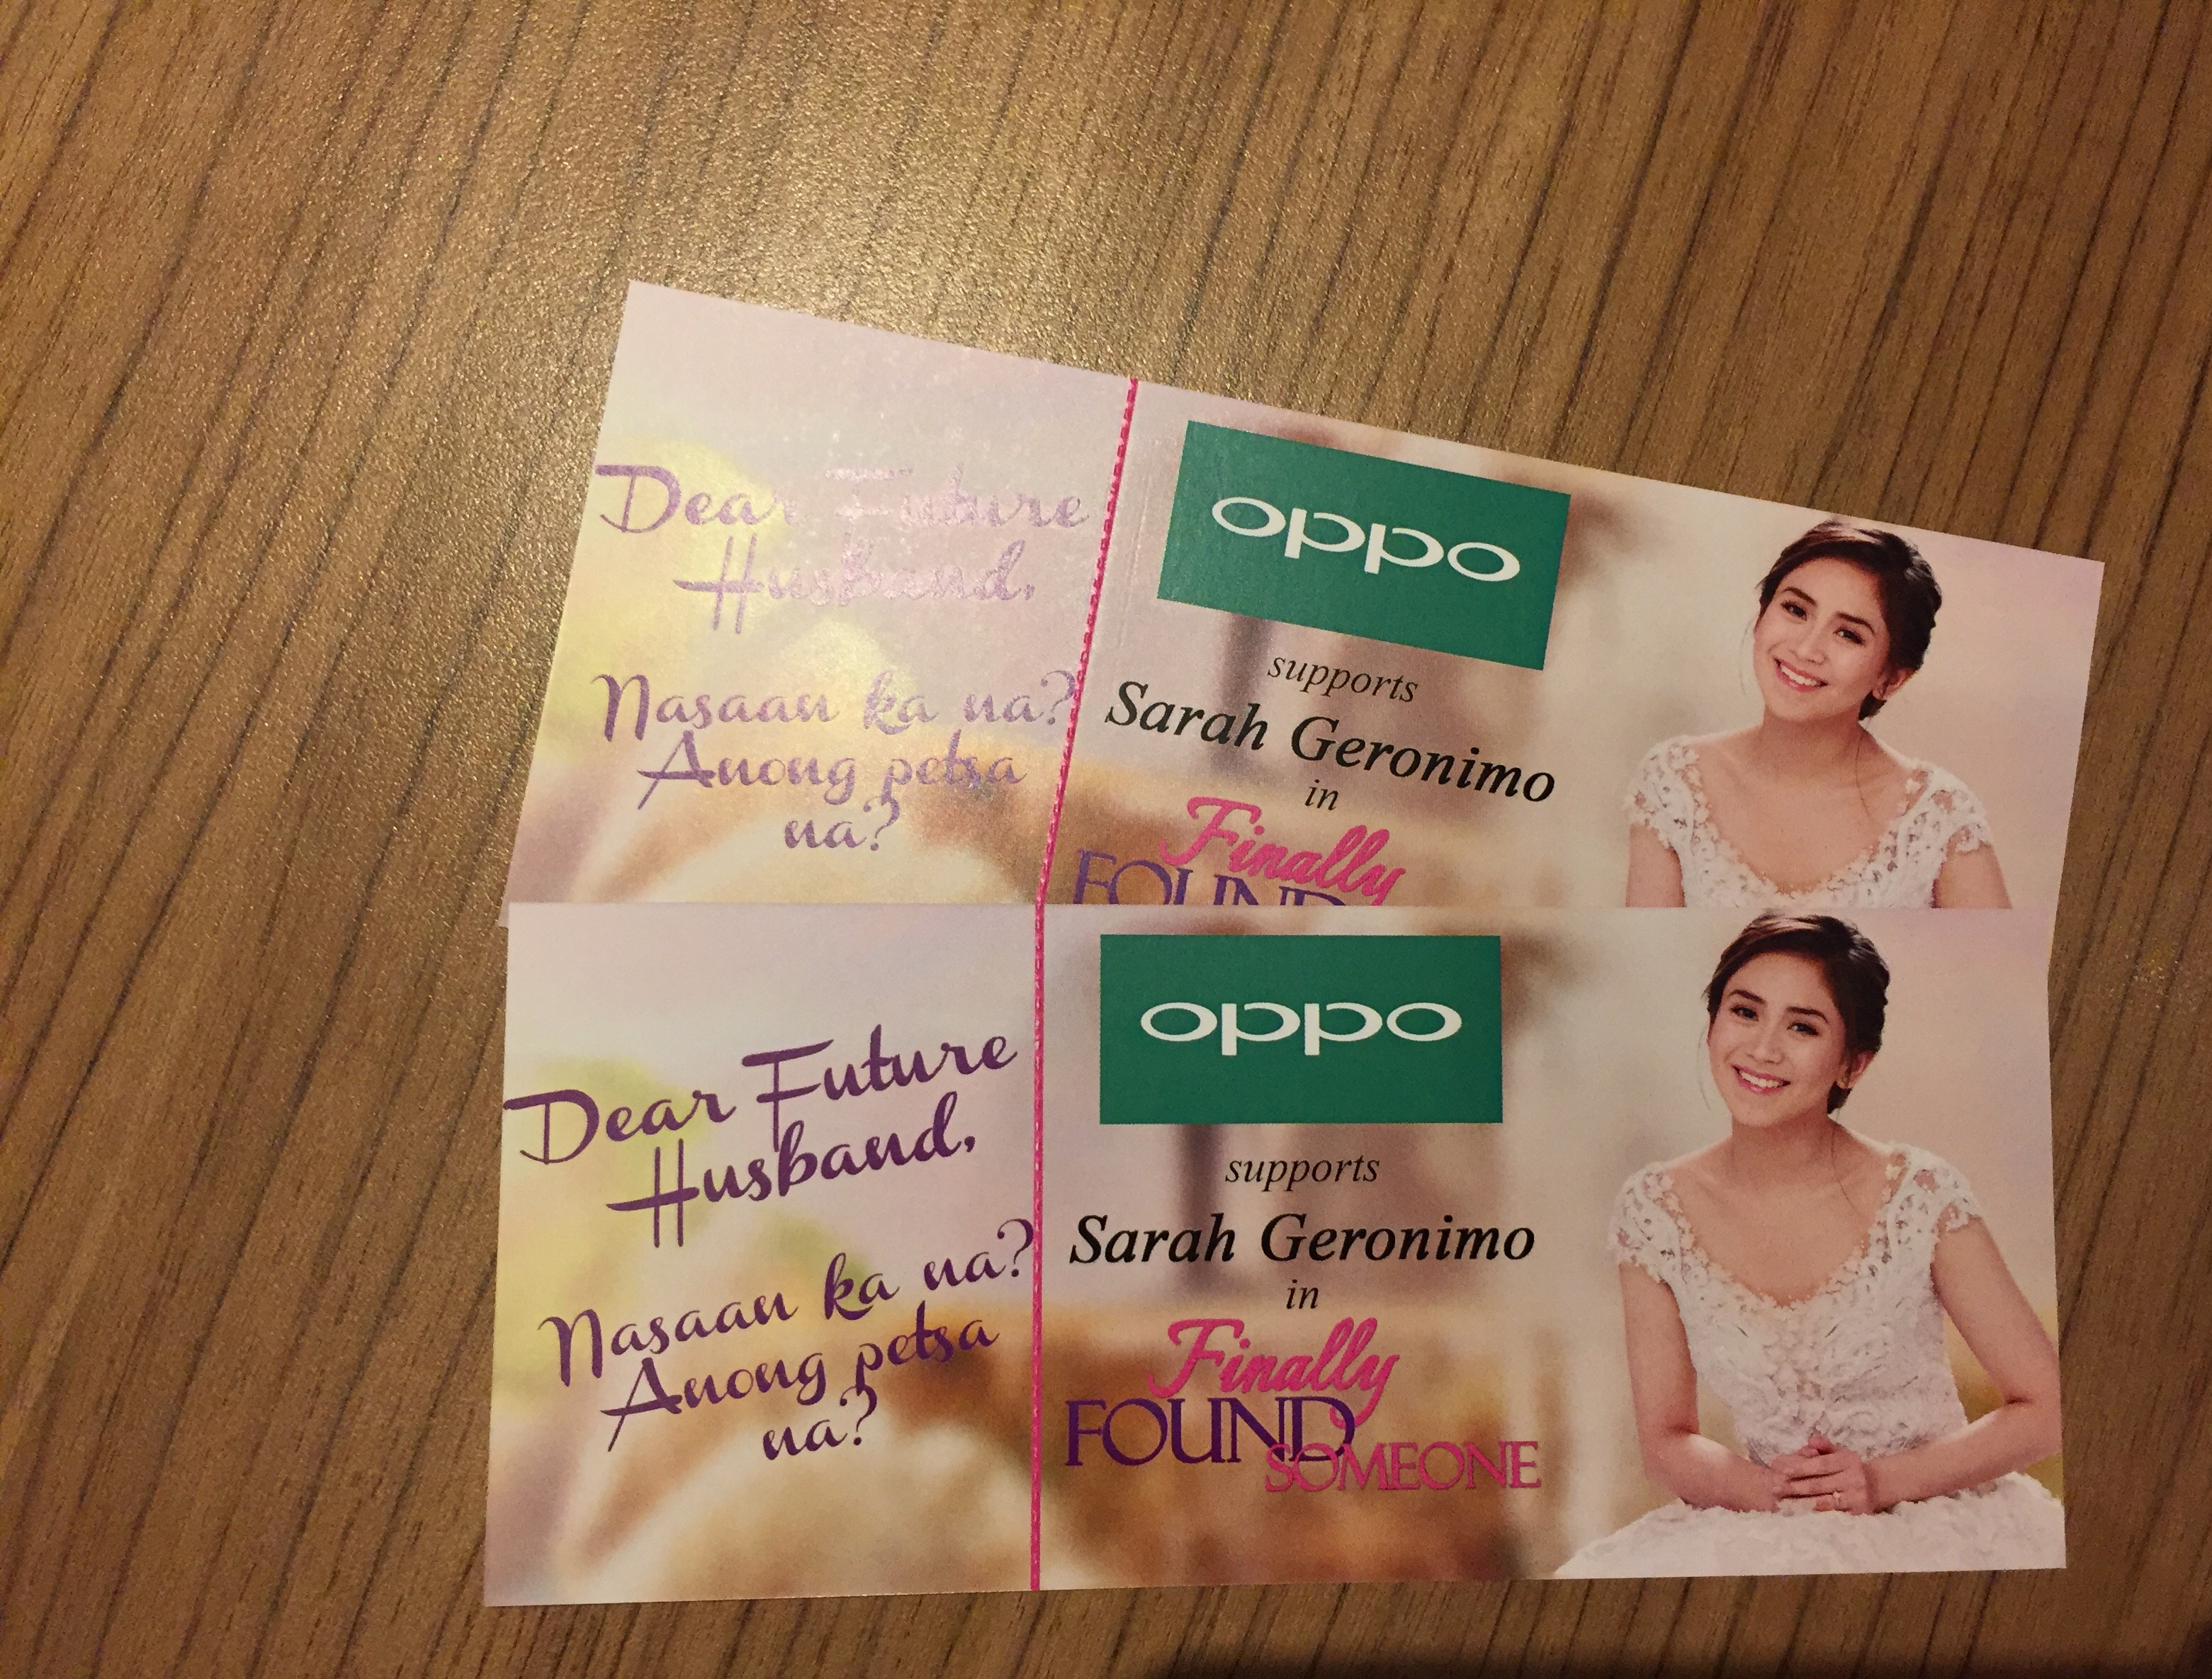 OPPO supports Sarah Geronimo Finally Found Someone Movie